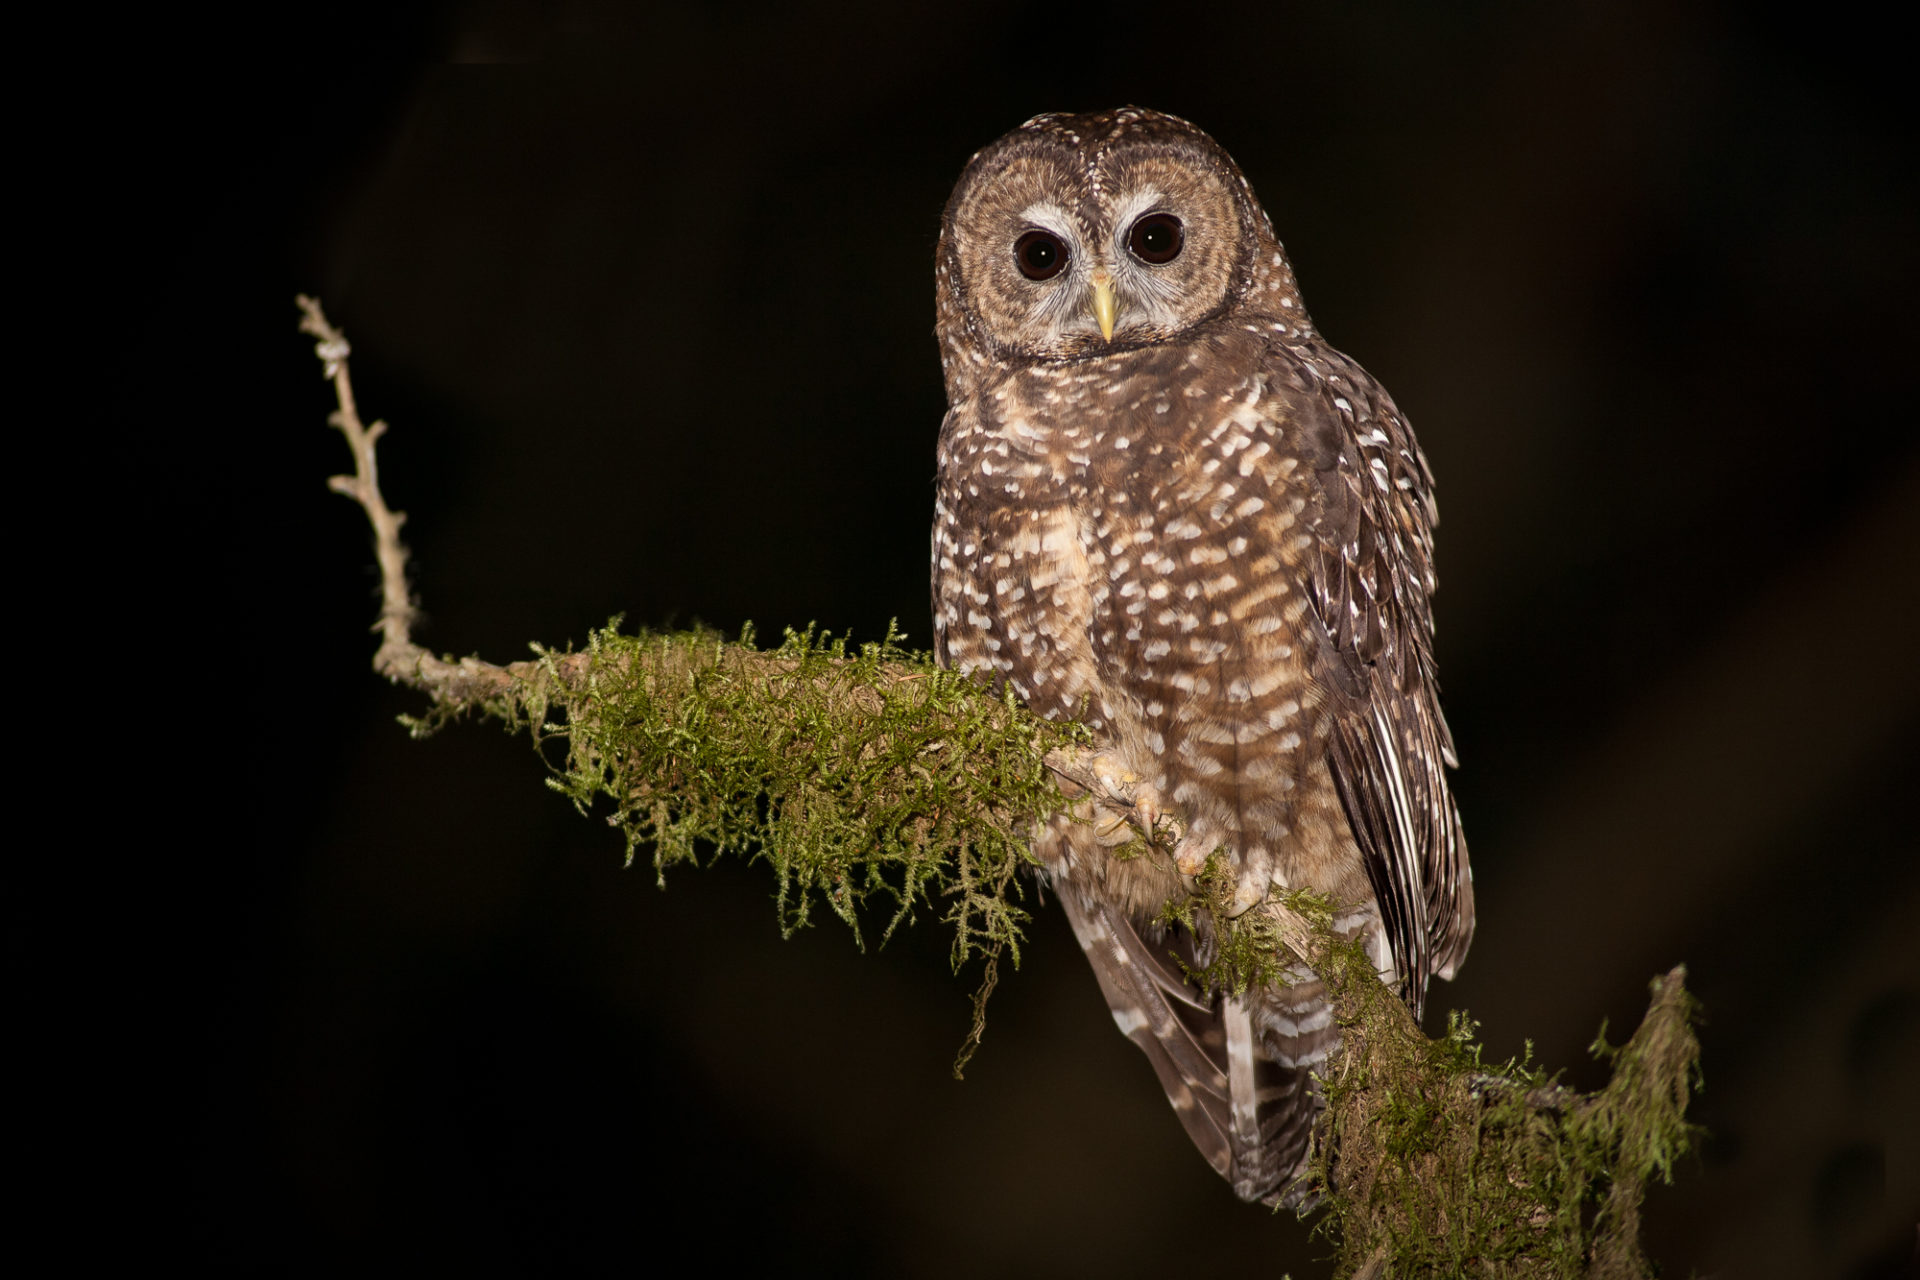 A Northern Spotted Owl, strix occidentalis caurina, in southern B.C. Photo: Jared Hobbs